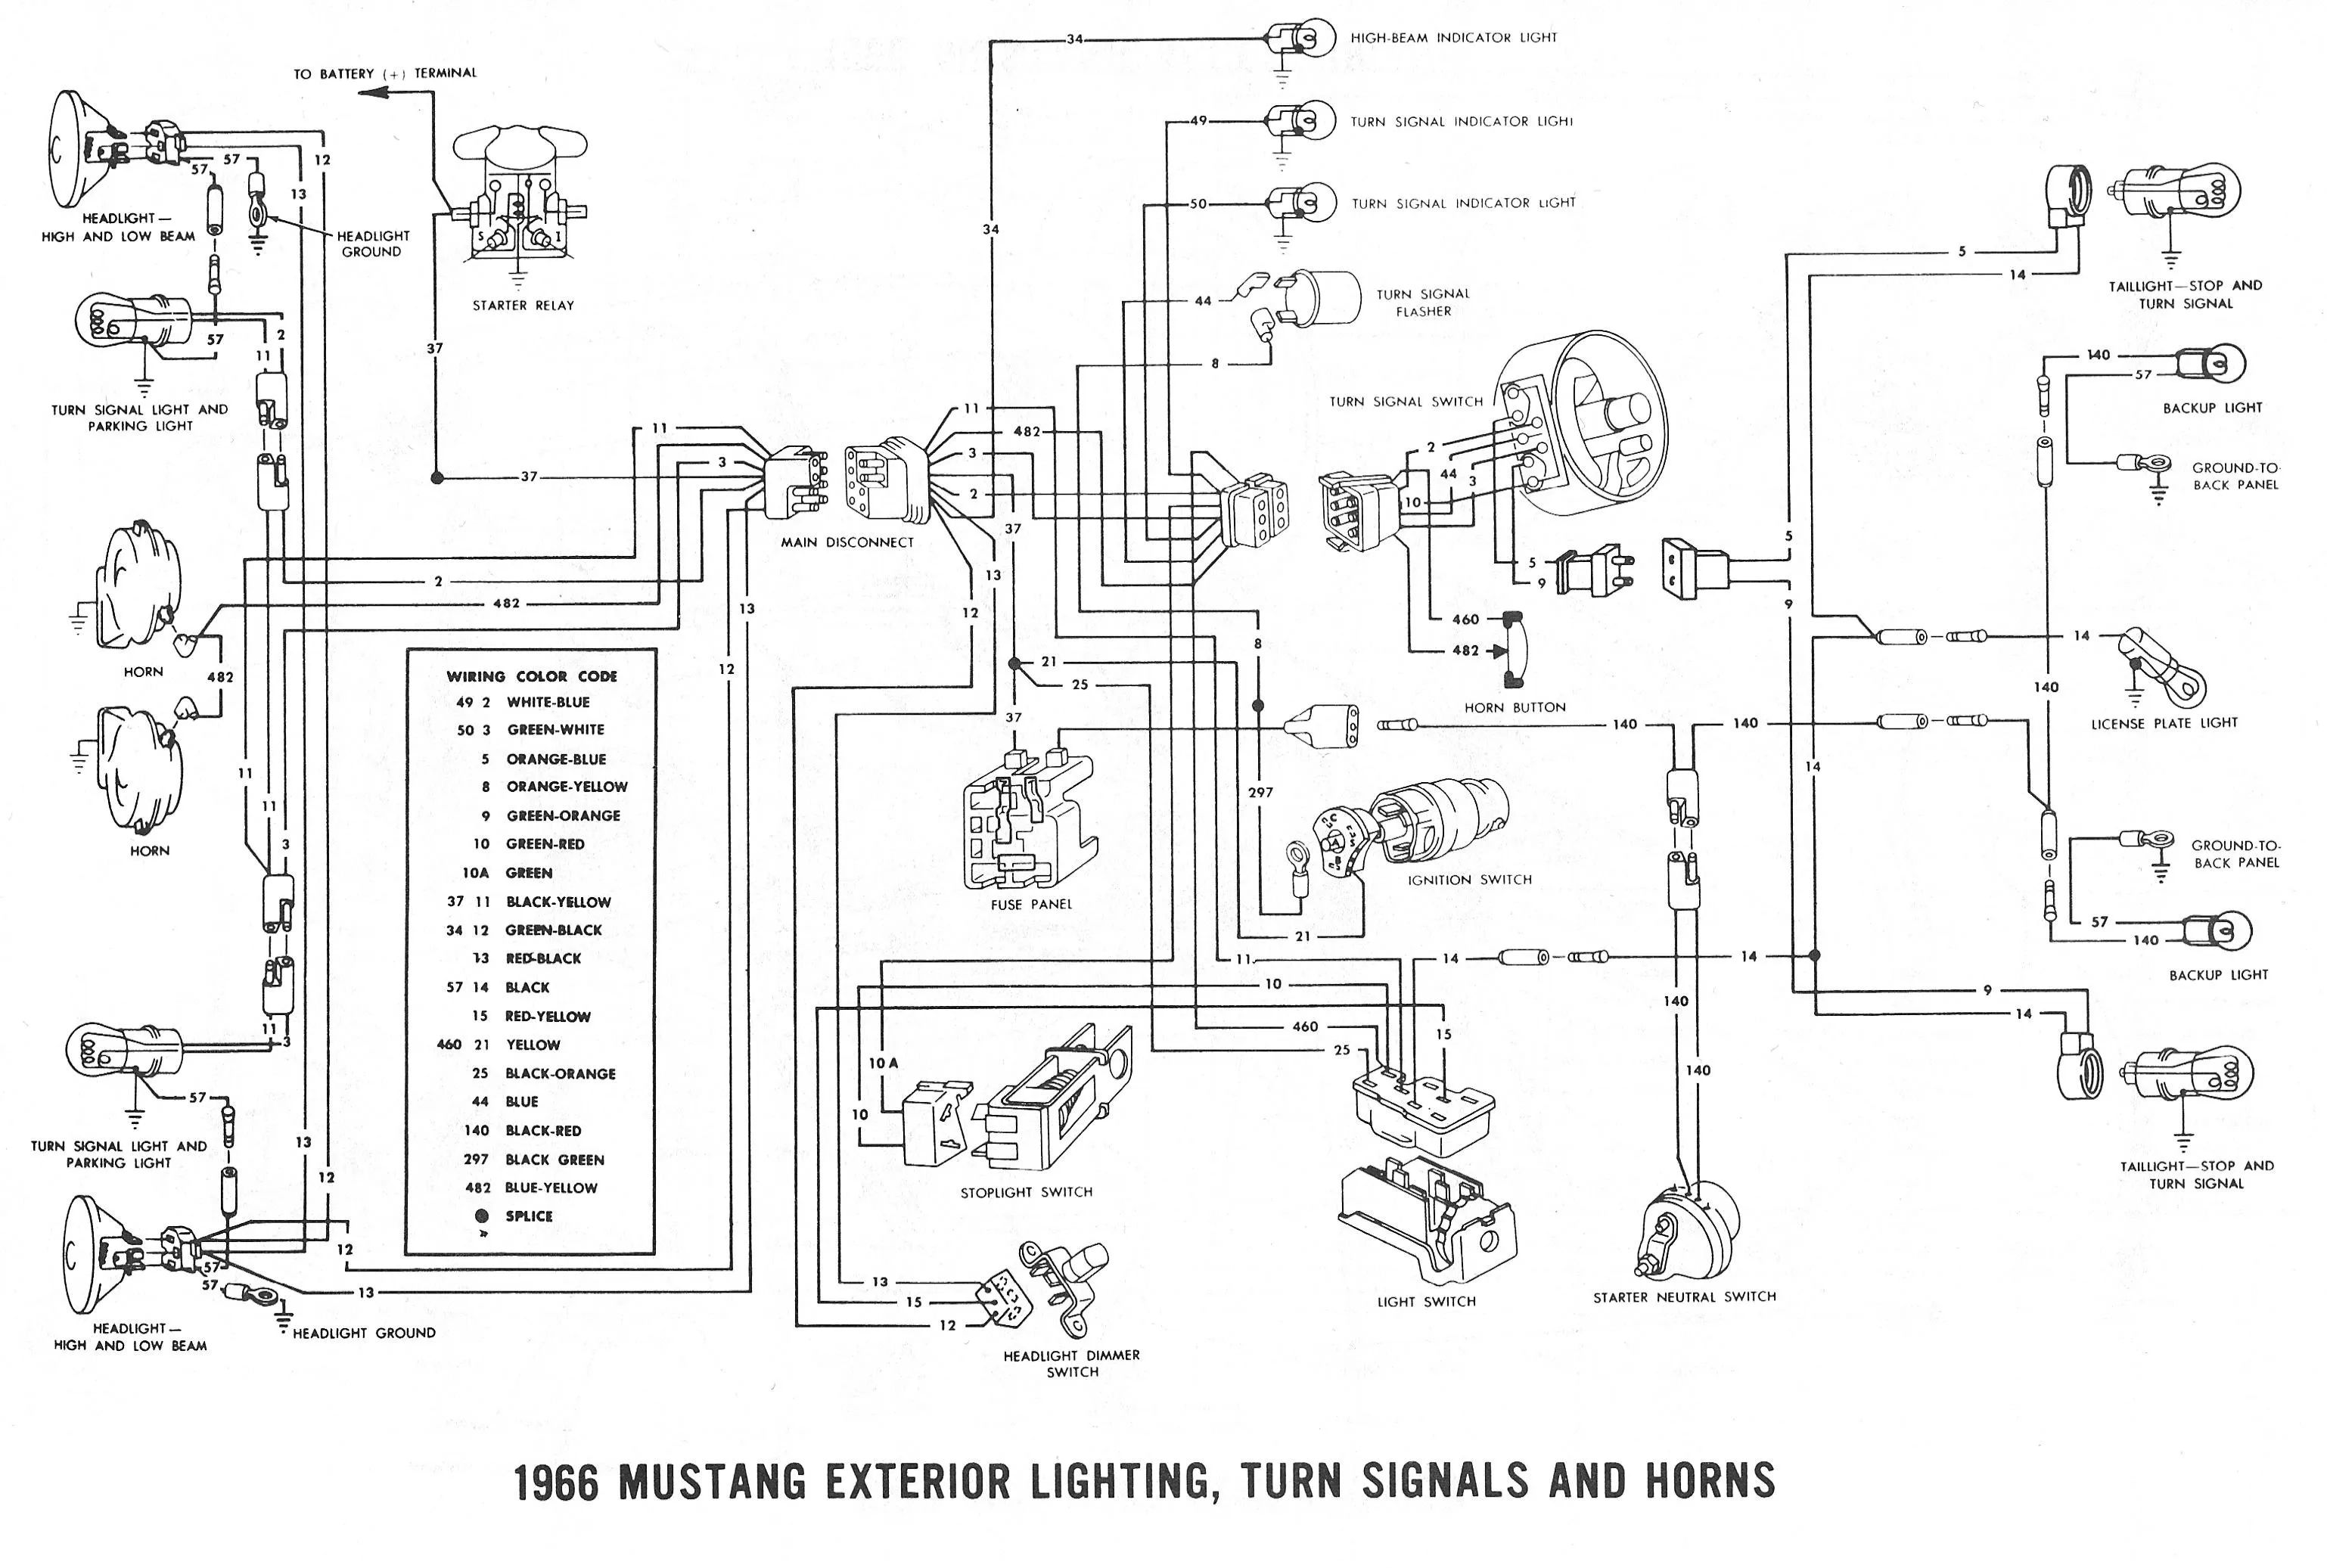 79 chevy blazer wiring diagram